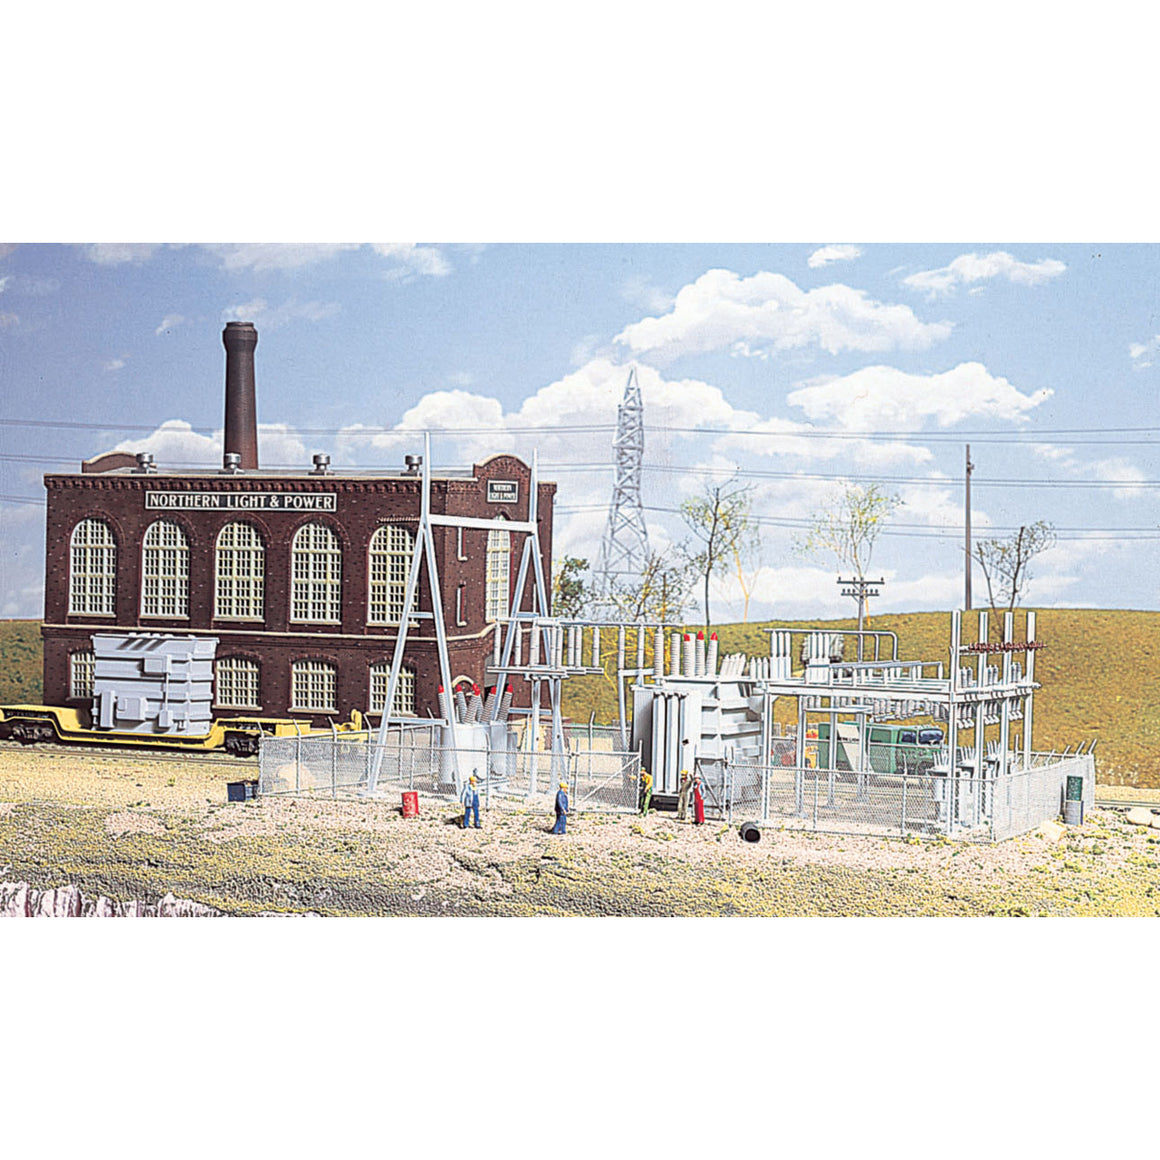 HO Scale: Northern Light & Power Substation - Kit